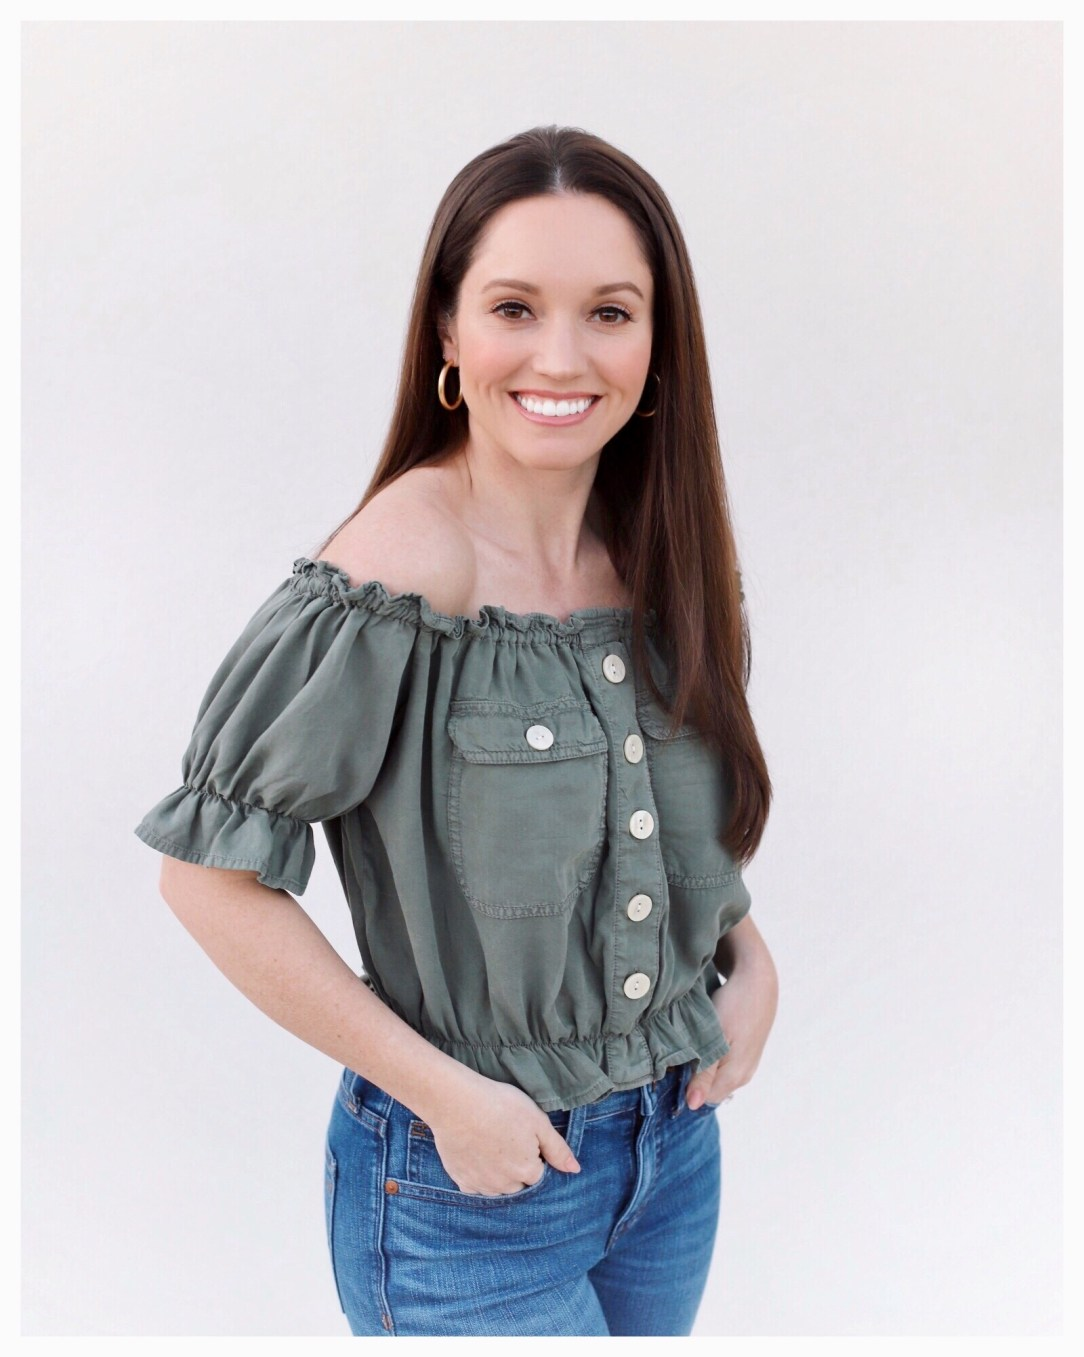 Five Foot Feminine in Olive Green Utility Top